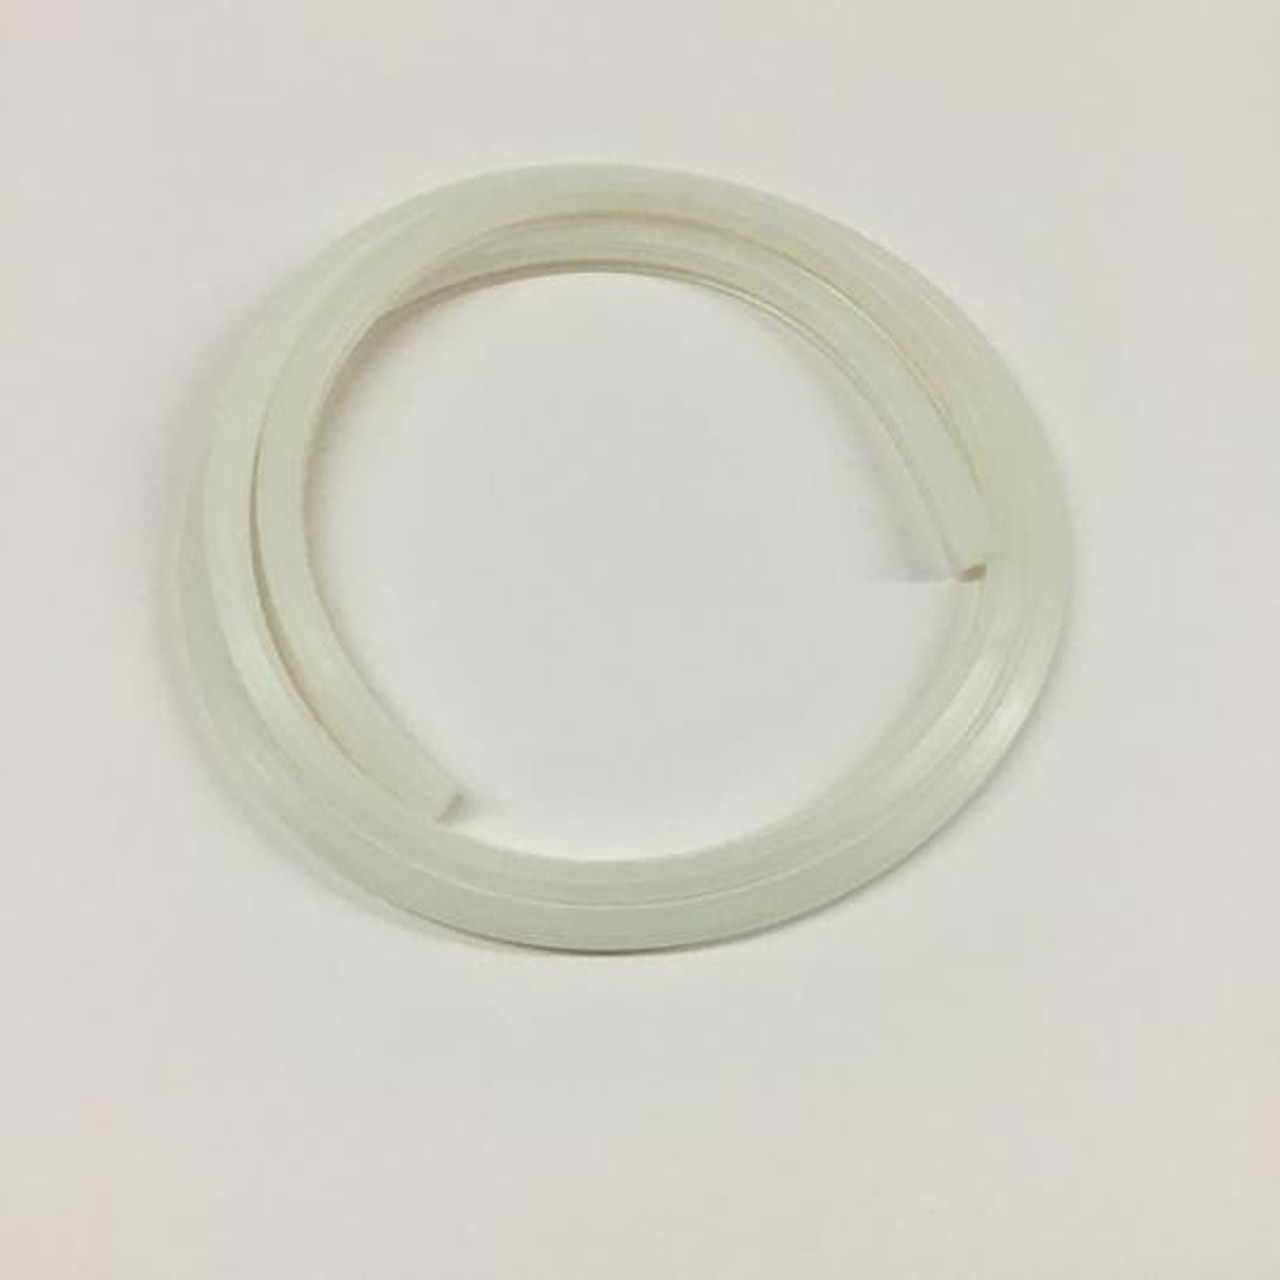 Channel Lid Gasket for MVS31 & MV 31 - KR991065